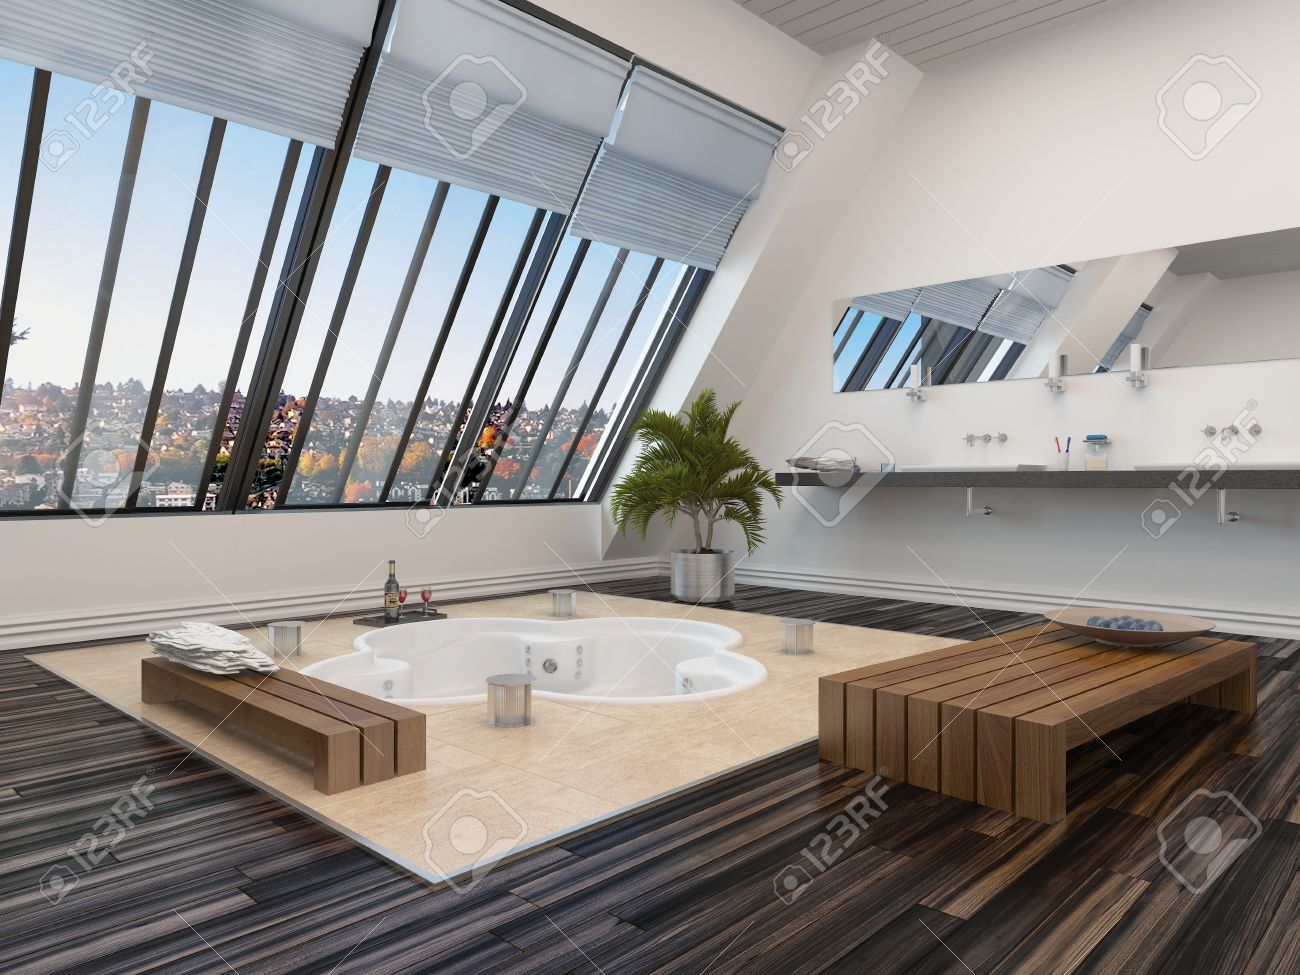 Modern Bathroom Interior With A Sunken Spa Bath In A Parquet Floor And  Panoramic Sloping View Part 54